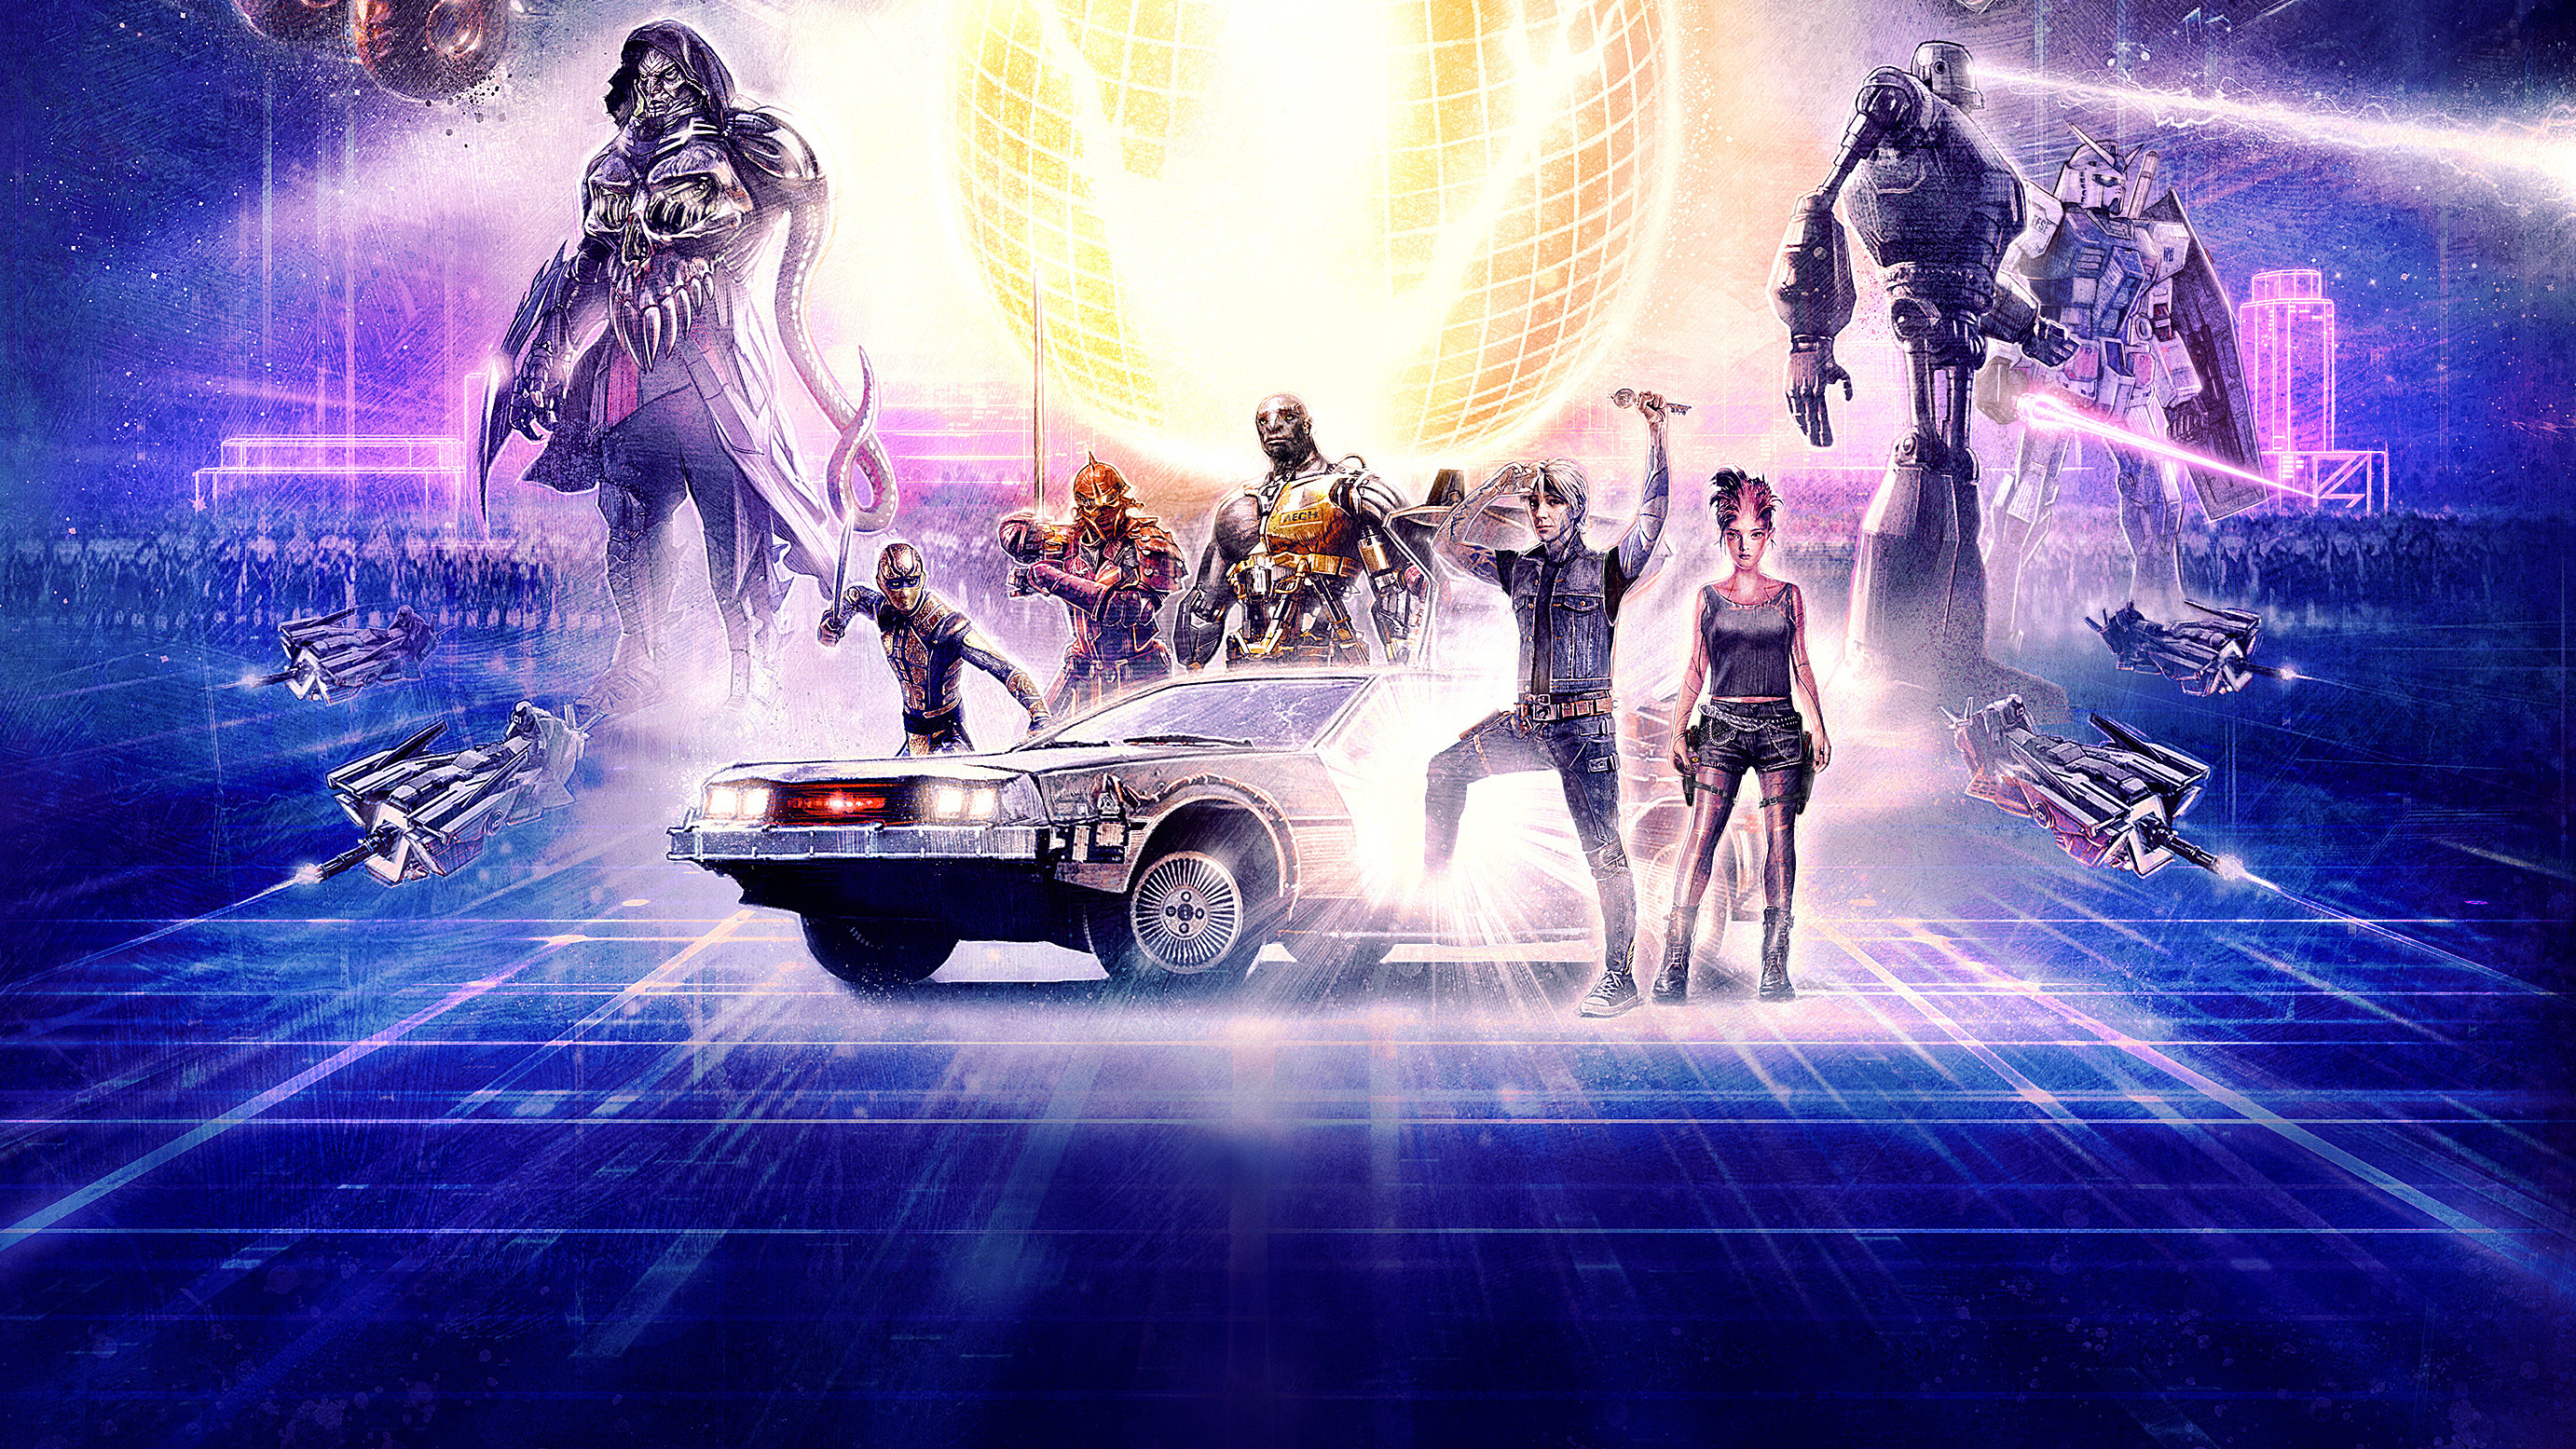 Anime Characters In Ready Player One : Ready player one hd wallpapers background images